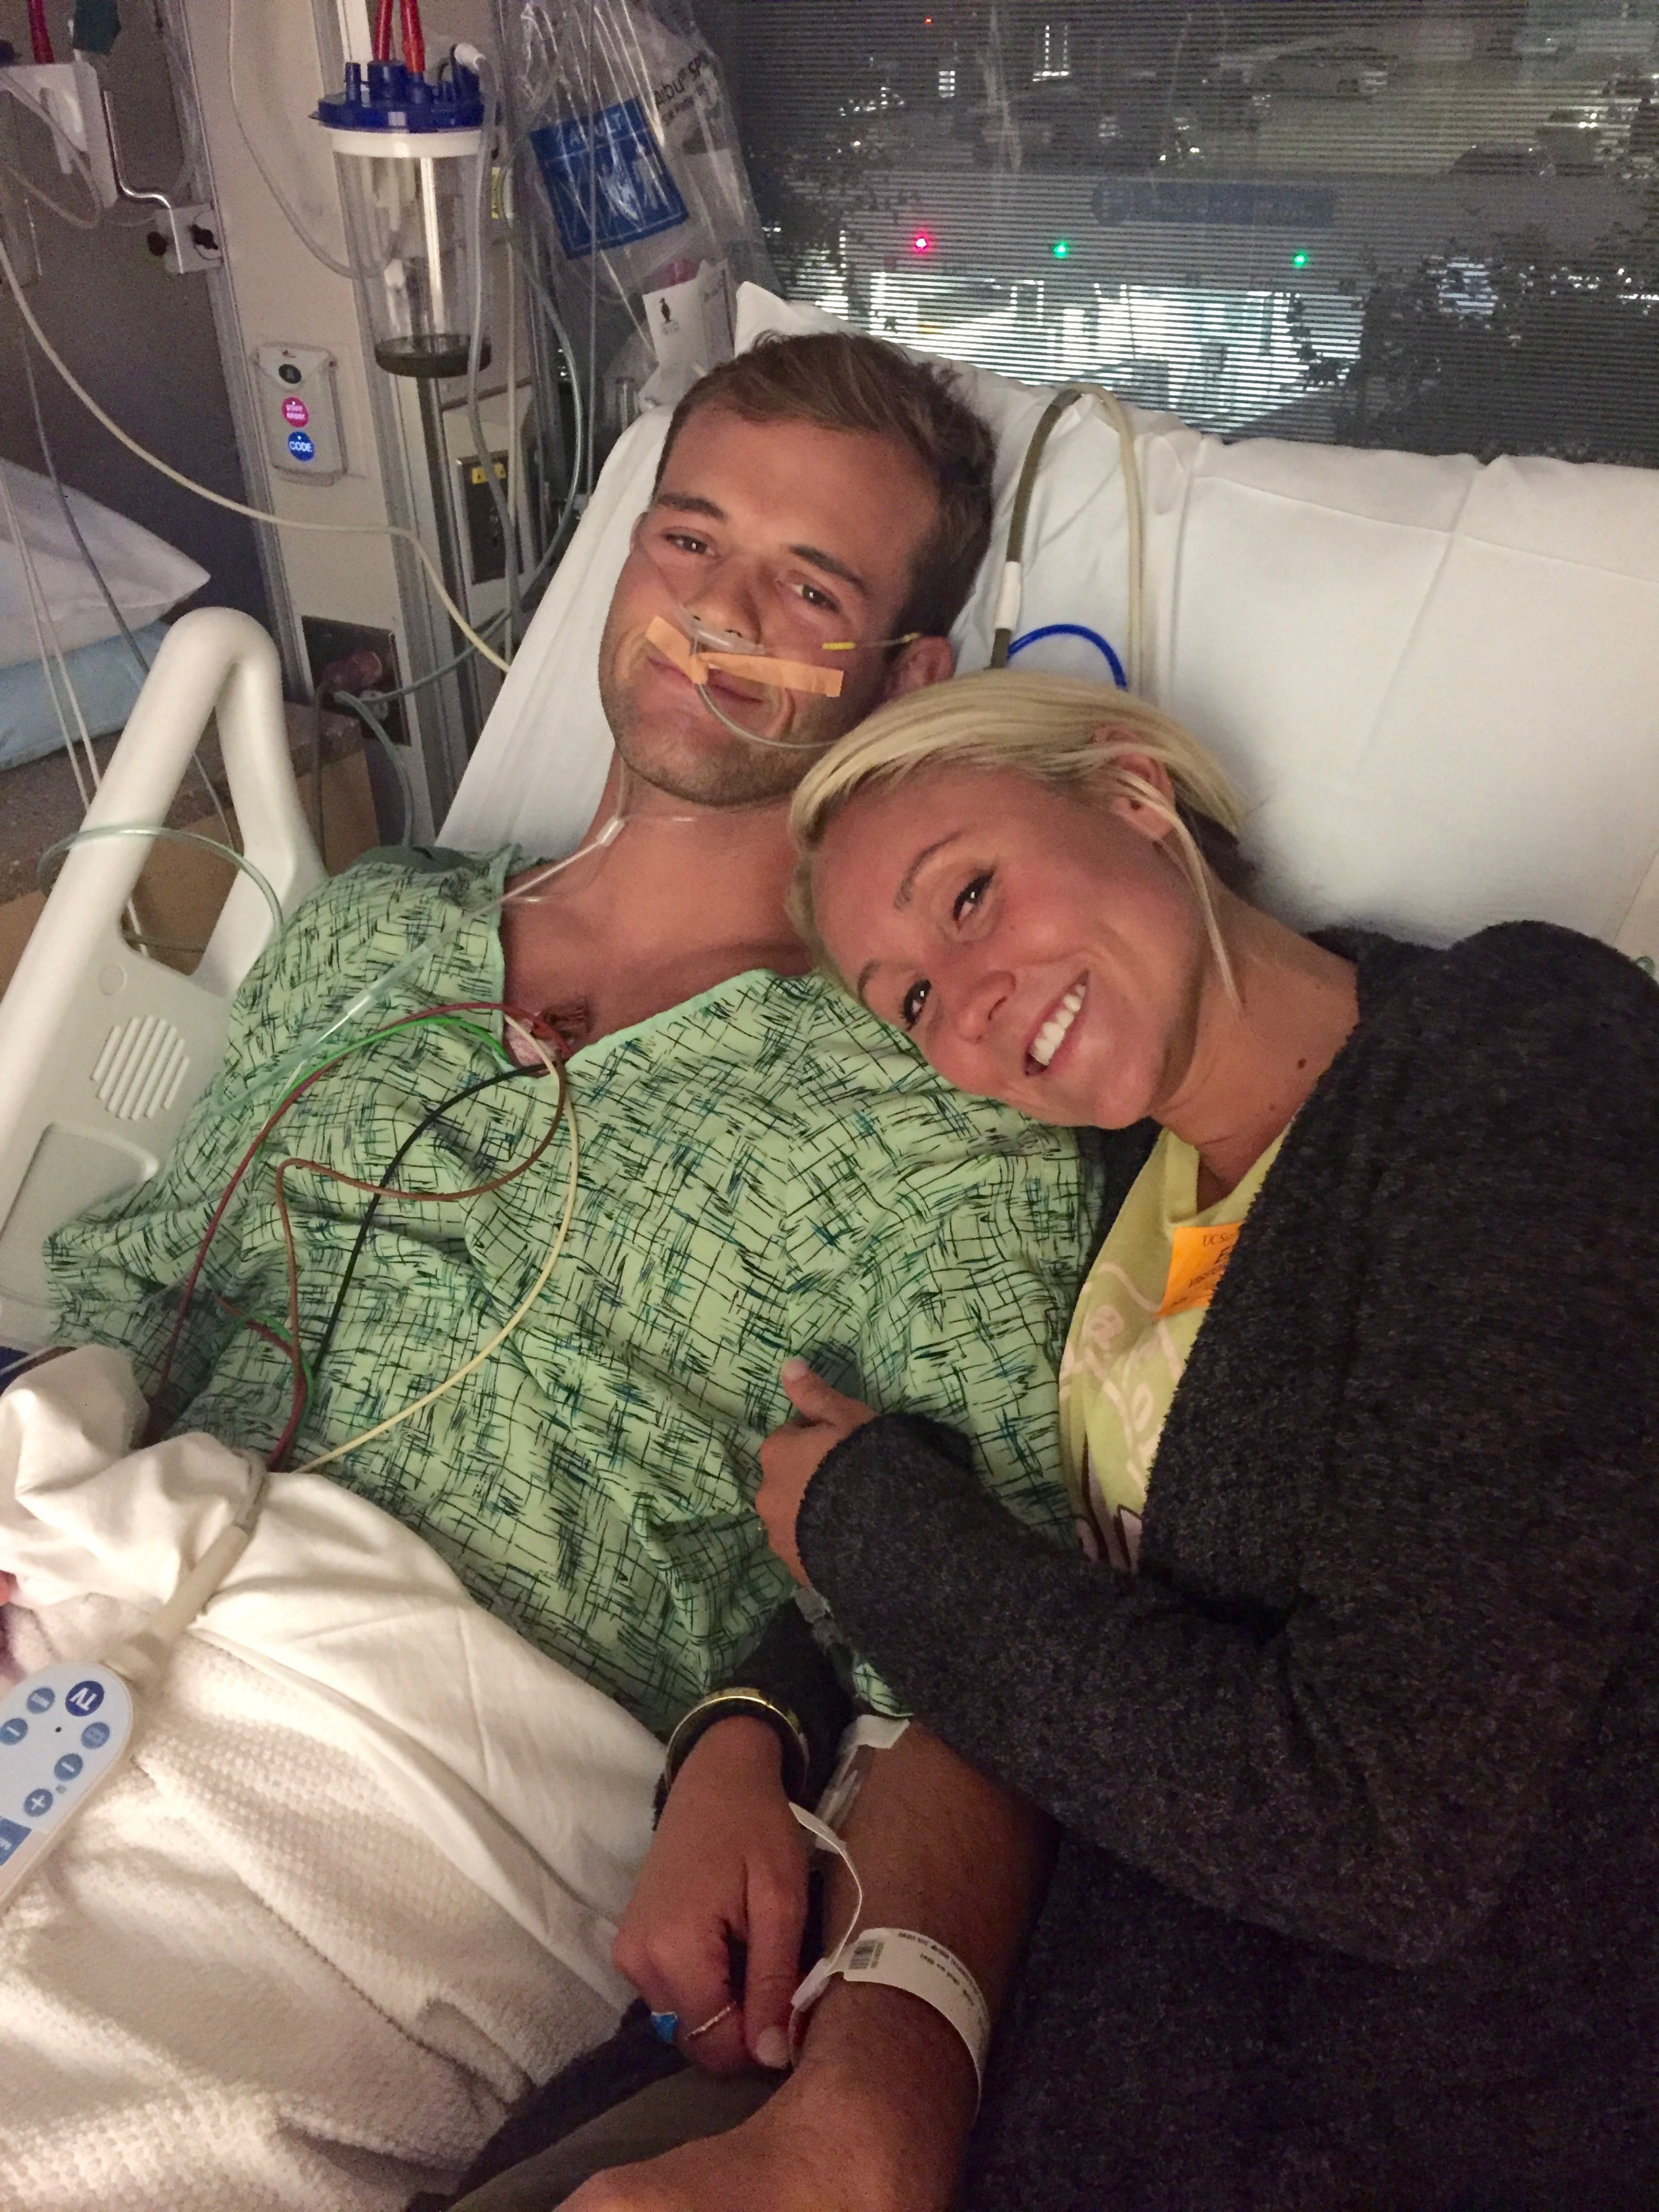 This is my favorite picture. What a sweetheart and comfort Lauren was. She stayed with Clark the whole time and gave patient encouragement.